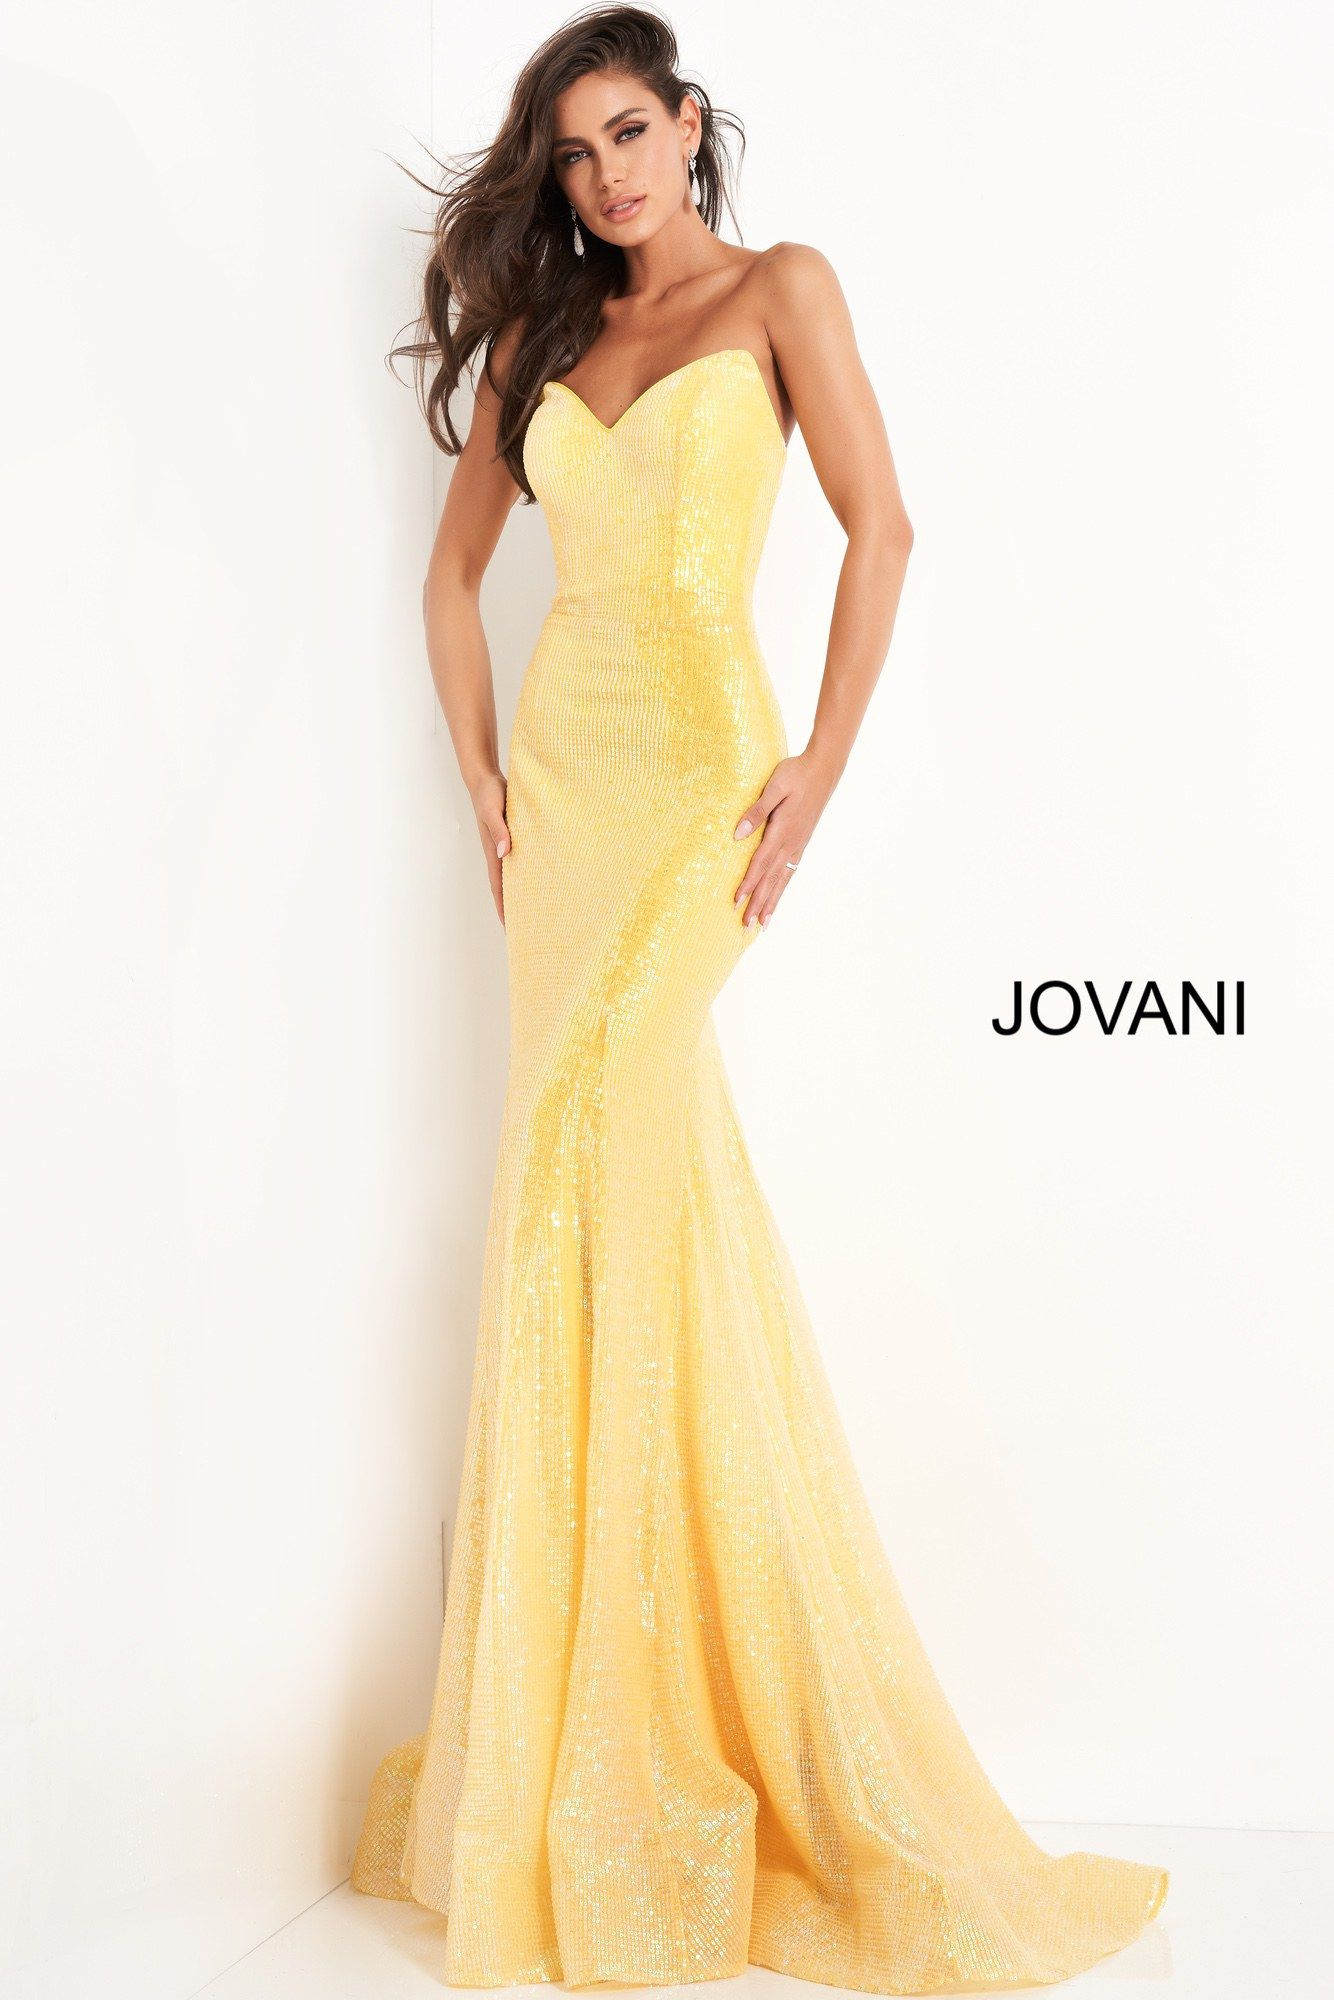 Jovani 04831 Yello Sequin Fitted Long Prom Dress In 2021 Prom Dresses Yellow Prom Dresses Jovani Prom Dresses [ 2000 x 1334 Pixel ]